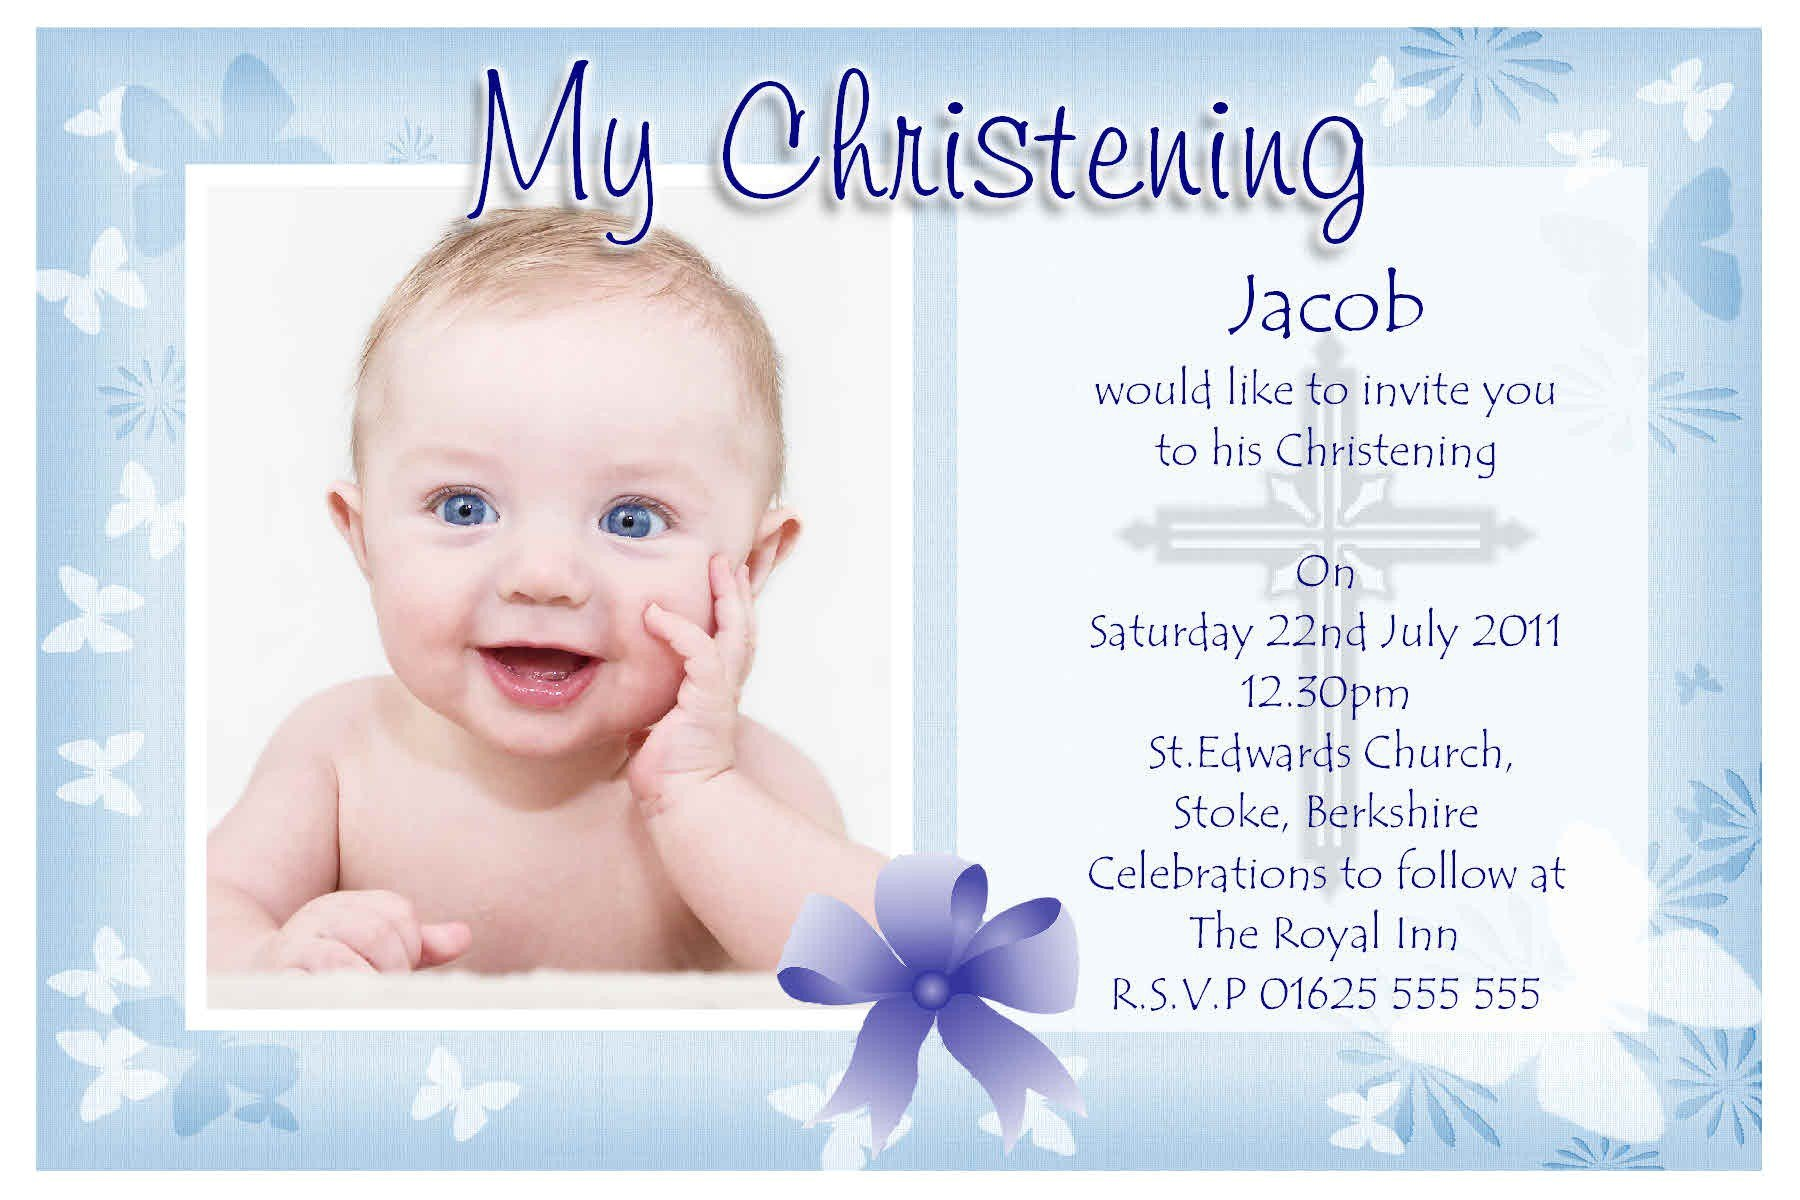 Sample Invitation Card for Baptism Baptism Invitation Baptism Invitations for Boys New